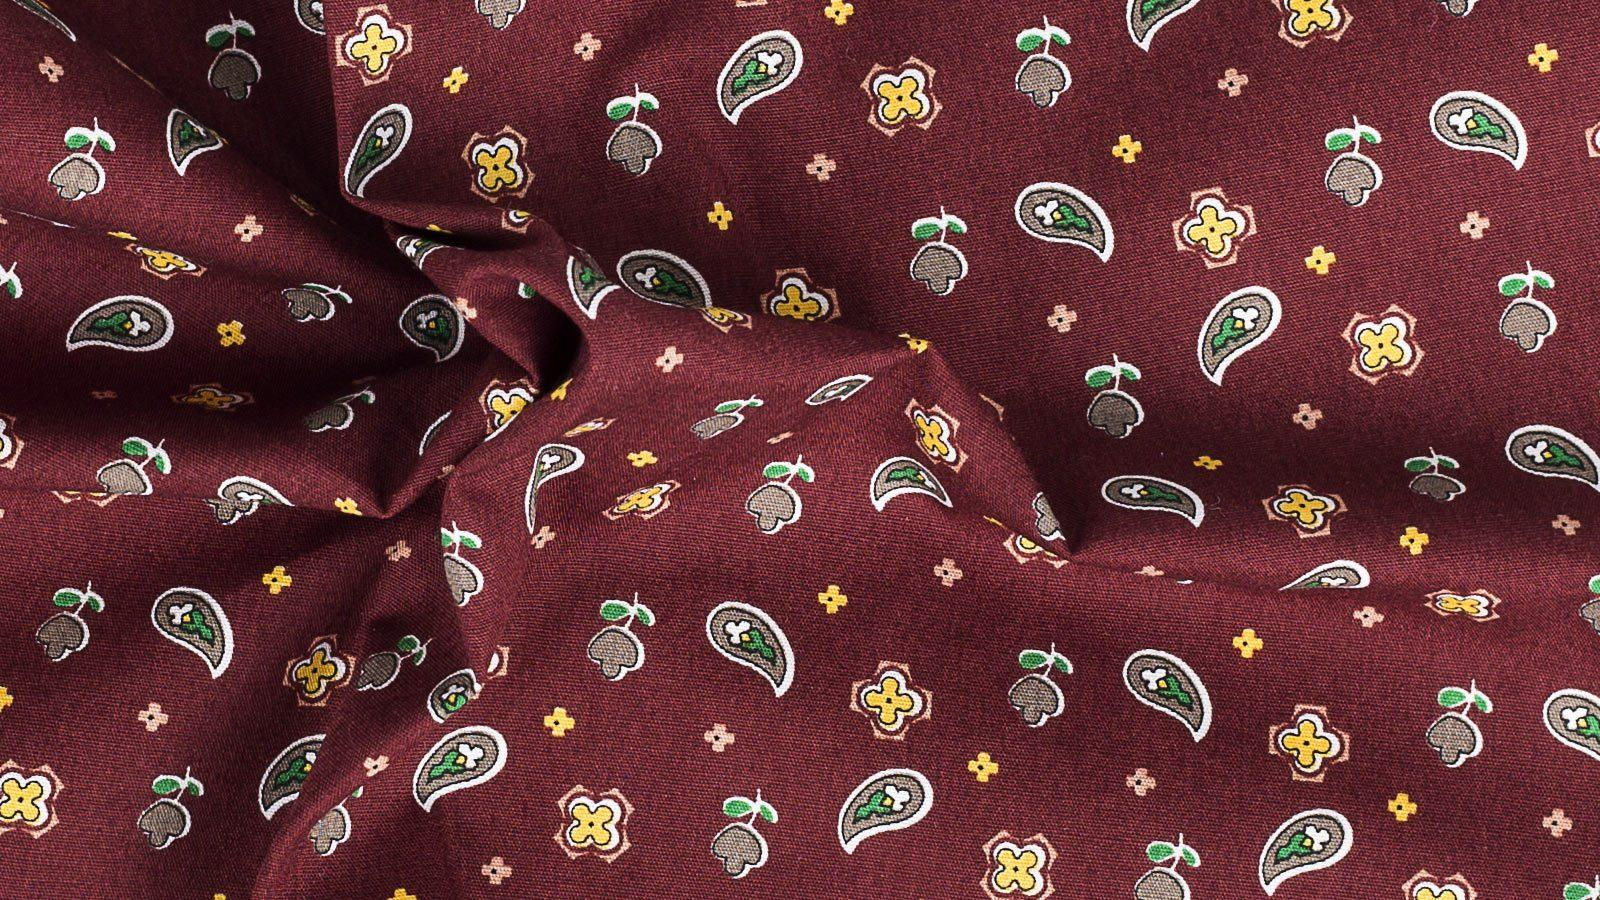 Burgundy Pocket Square with Paisley Pattern - slider image